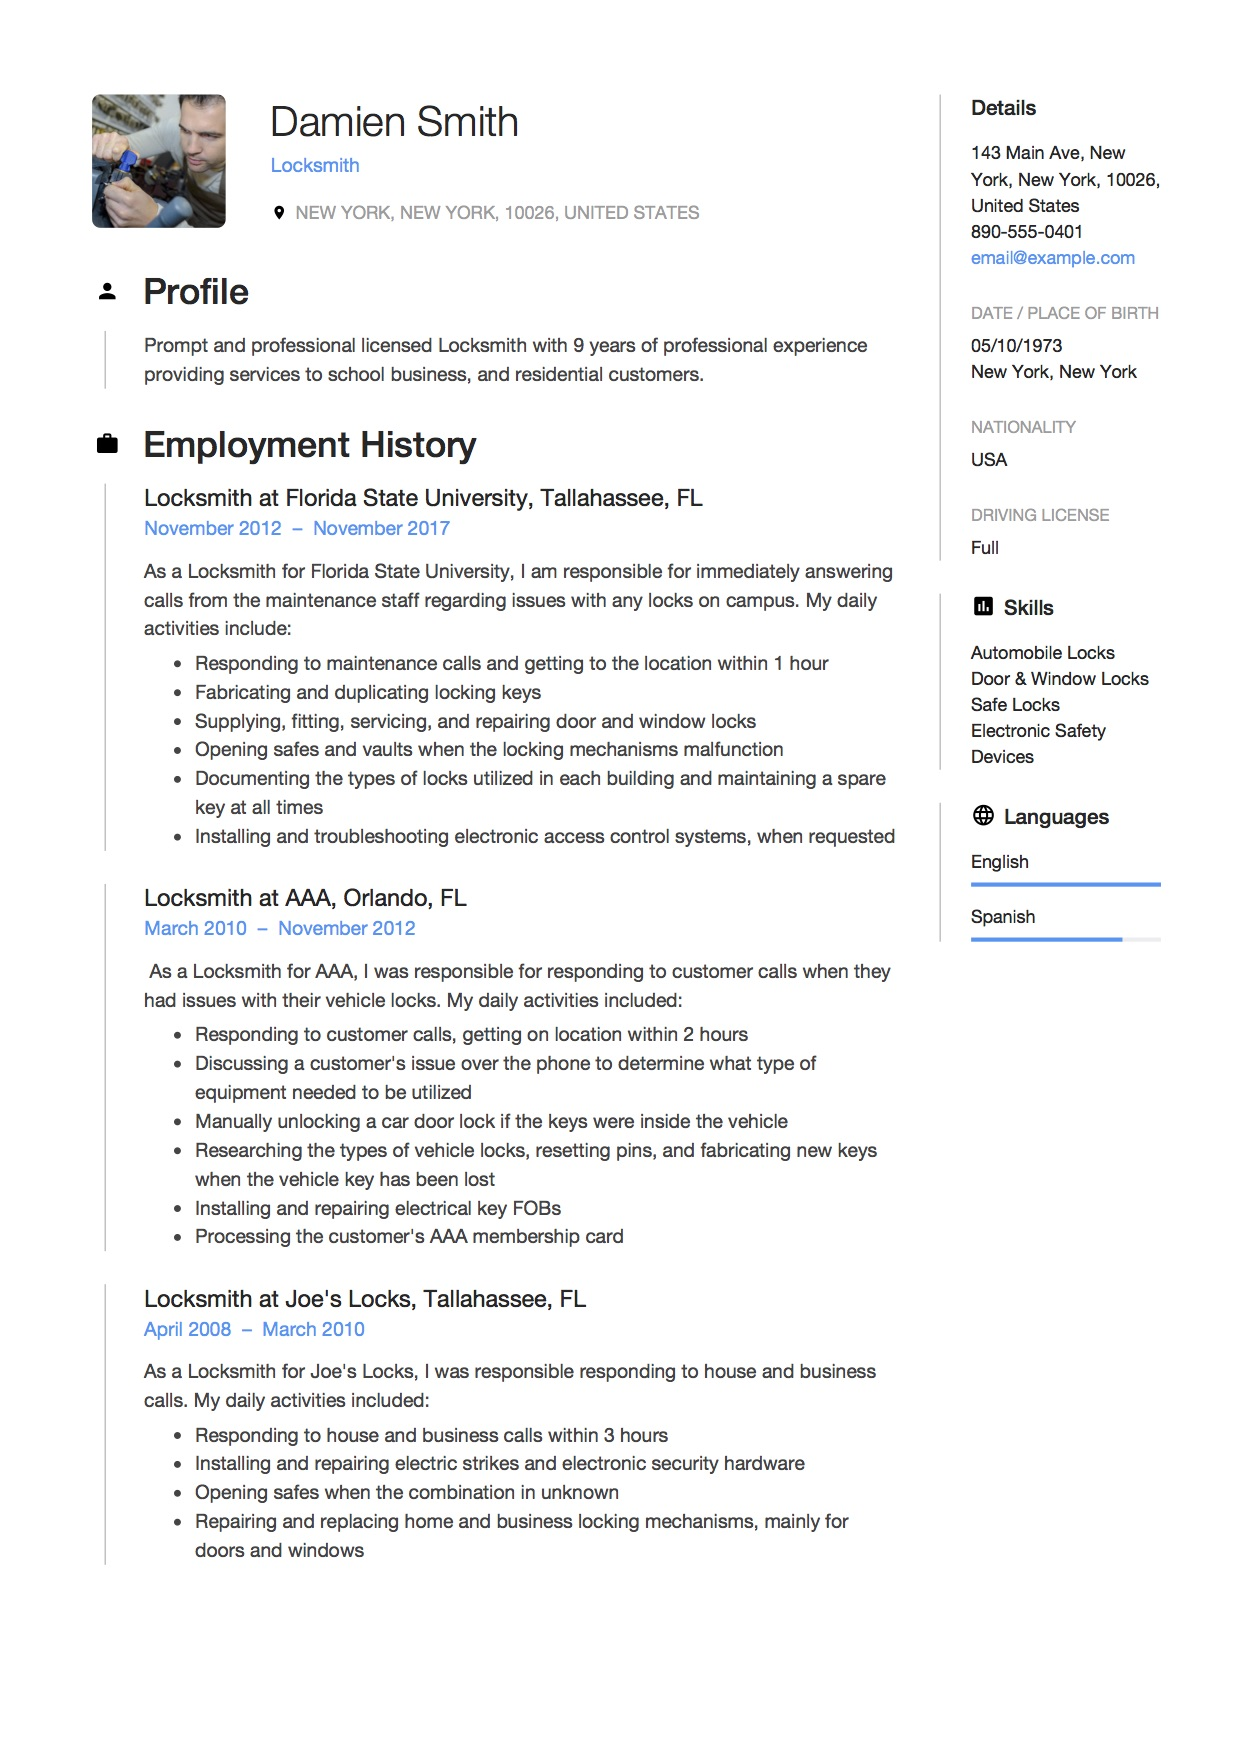 12 Locksmith Resume Sample(s) - 2018 (Free Downloads)